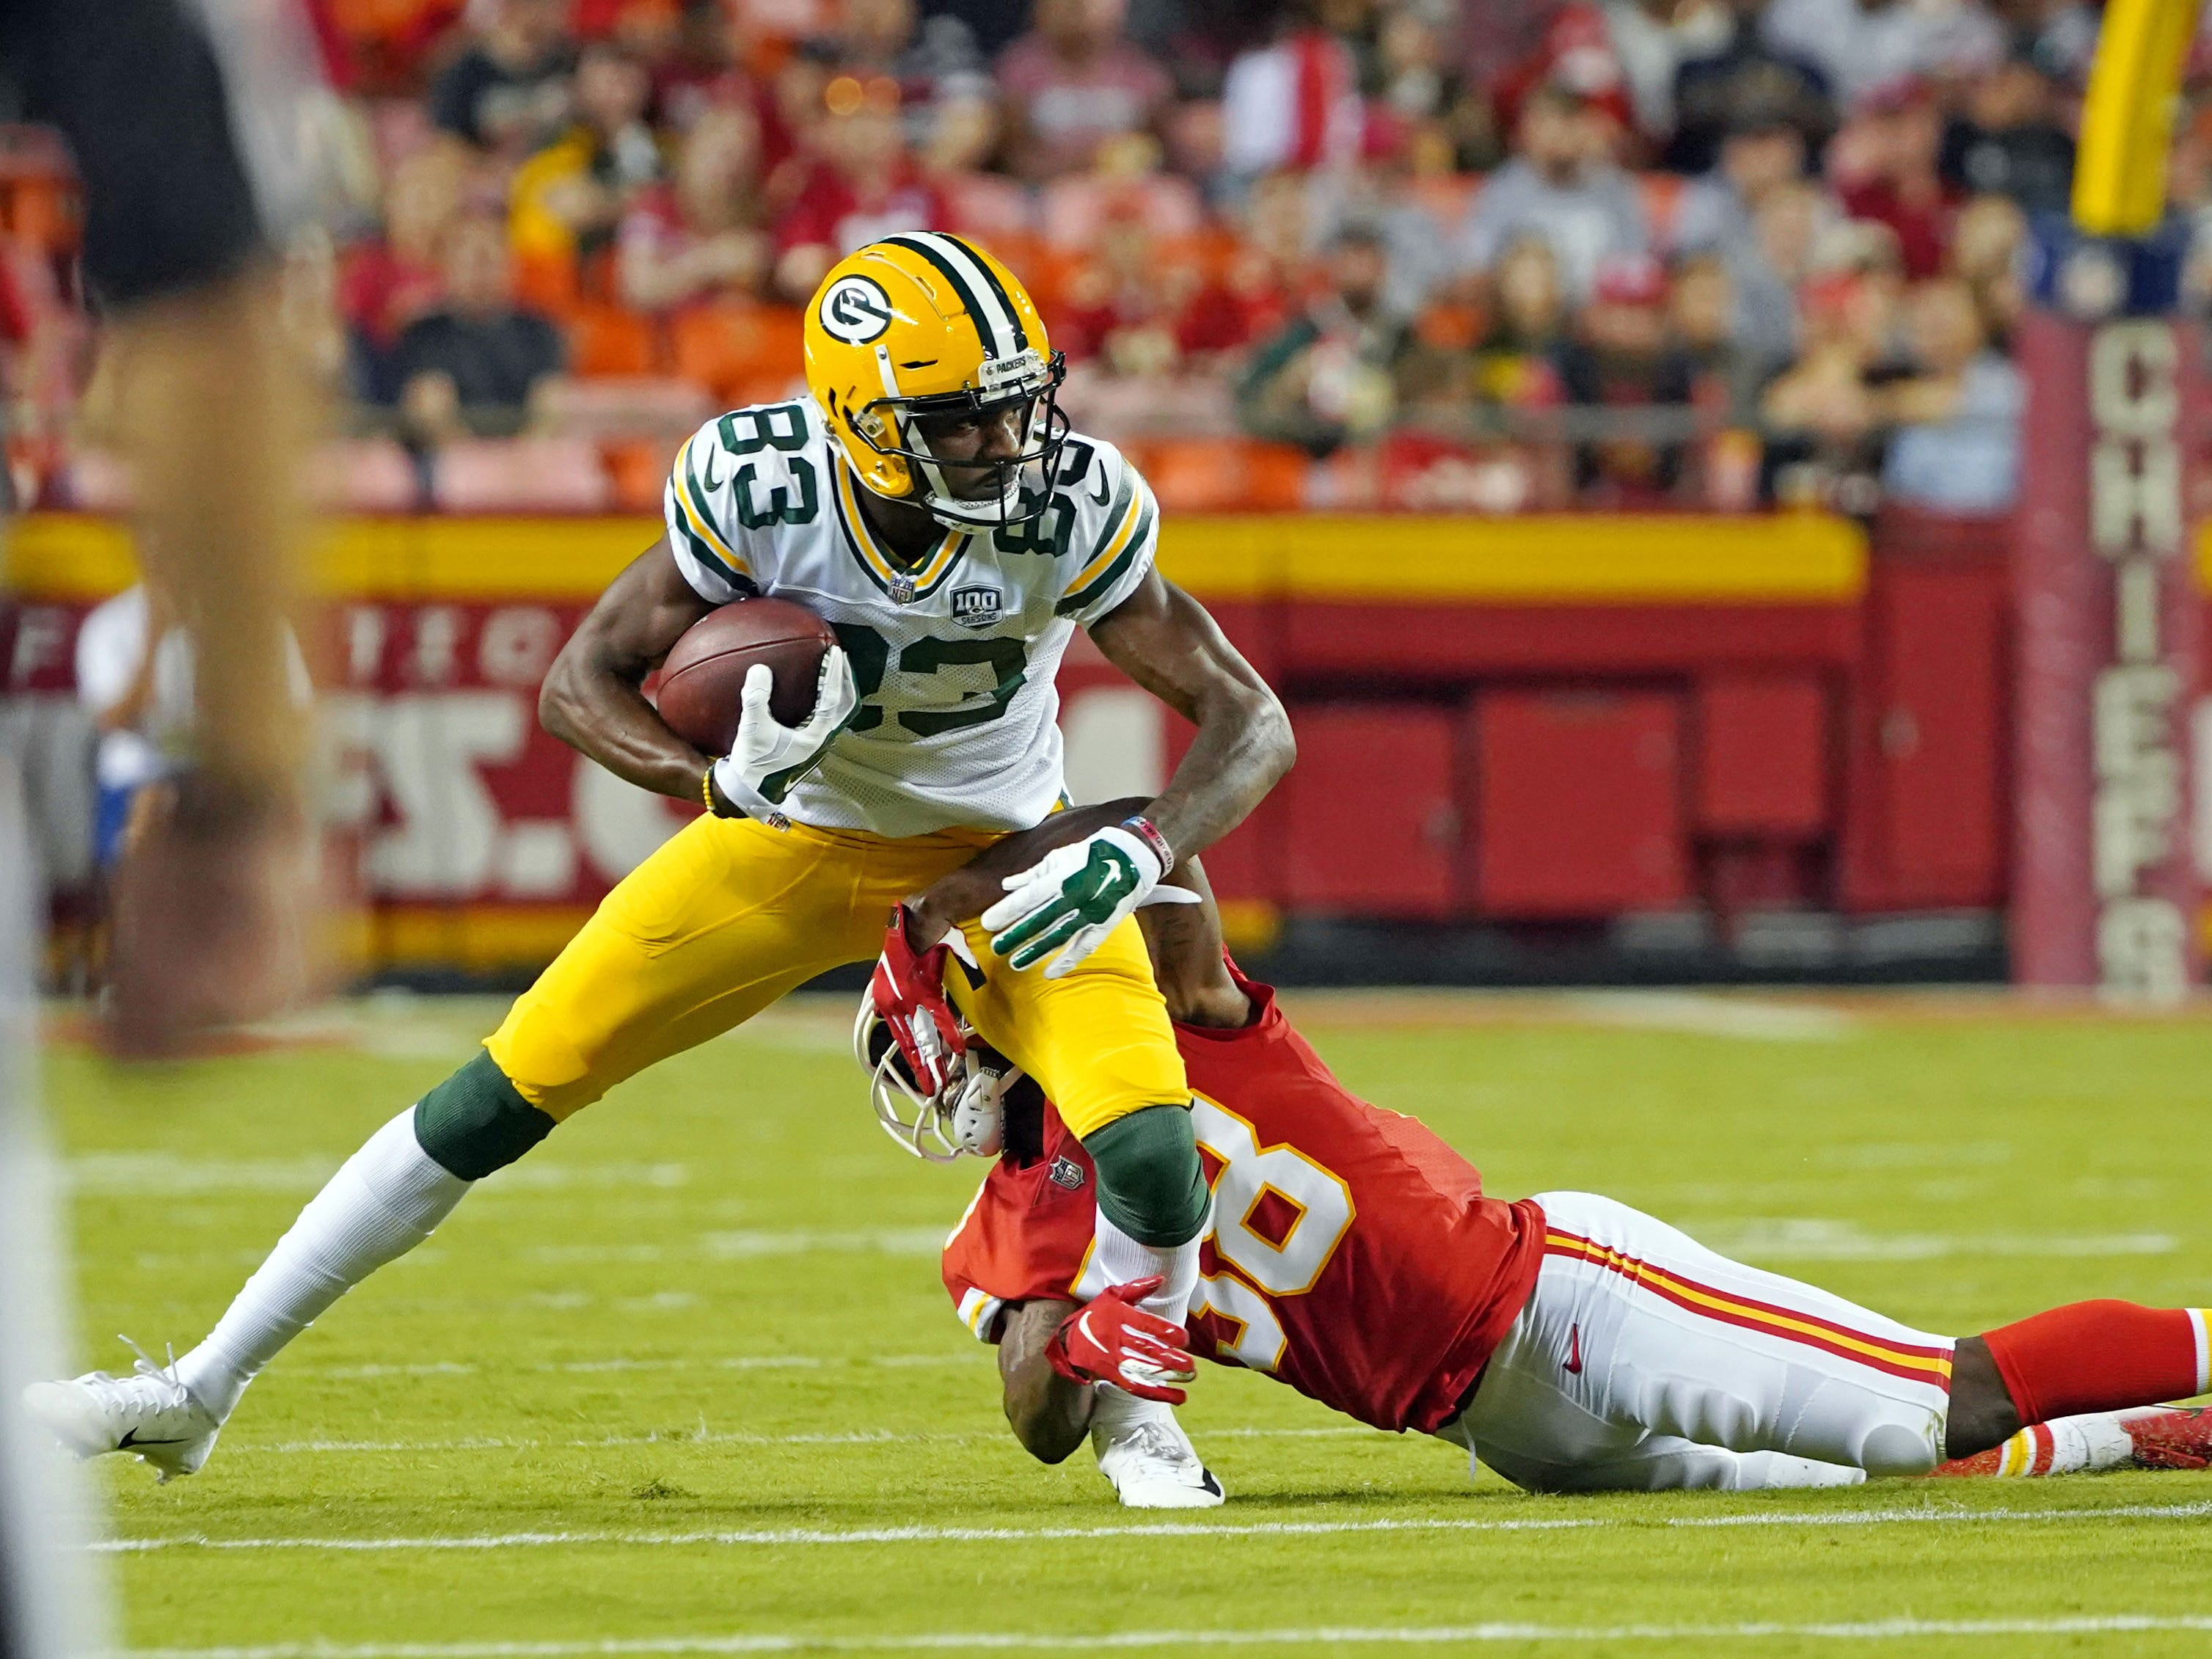 Aug 30, 2018; Kansas City, MO, USA; Green Bay Packers wide receiver Marquez Valdes-Scantling (83) runs against Kansas City Chiefs defensive back Arrion Springs (38) in the first half at Arrowhead Stadium.